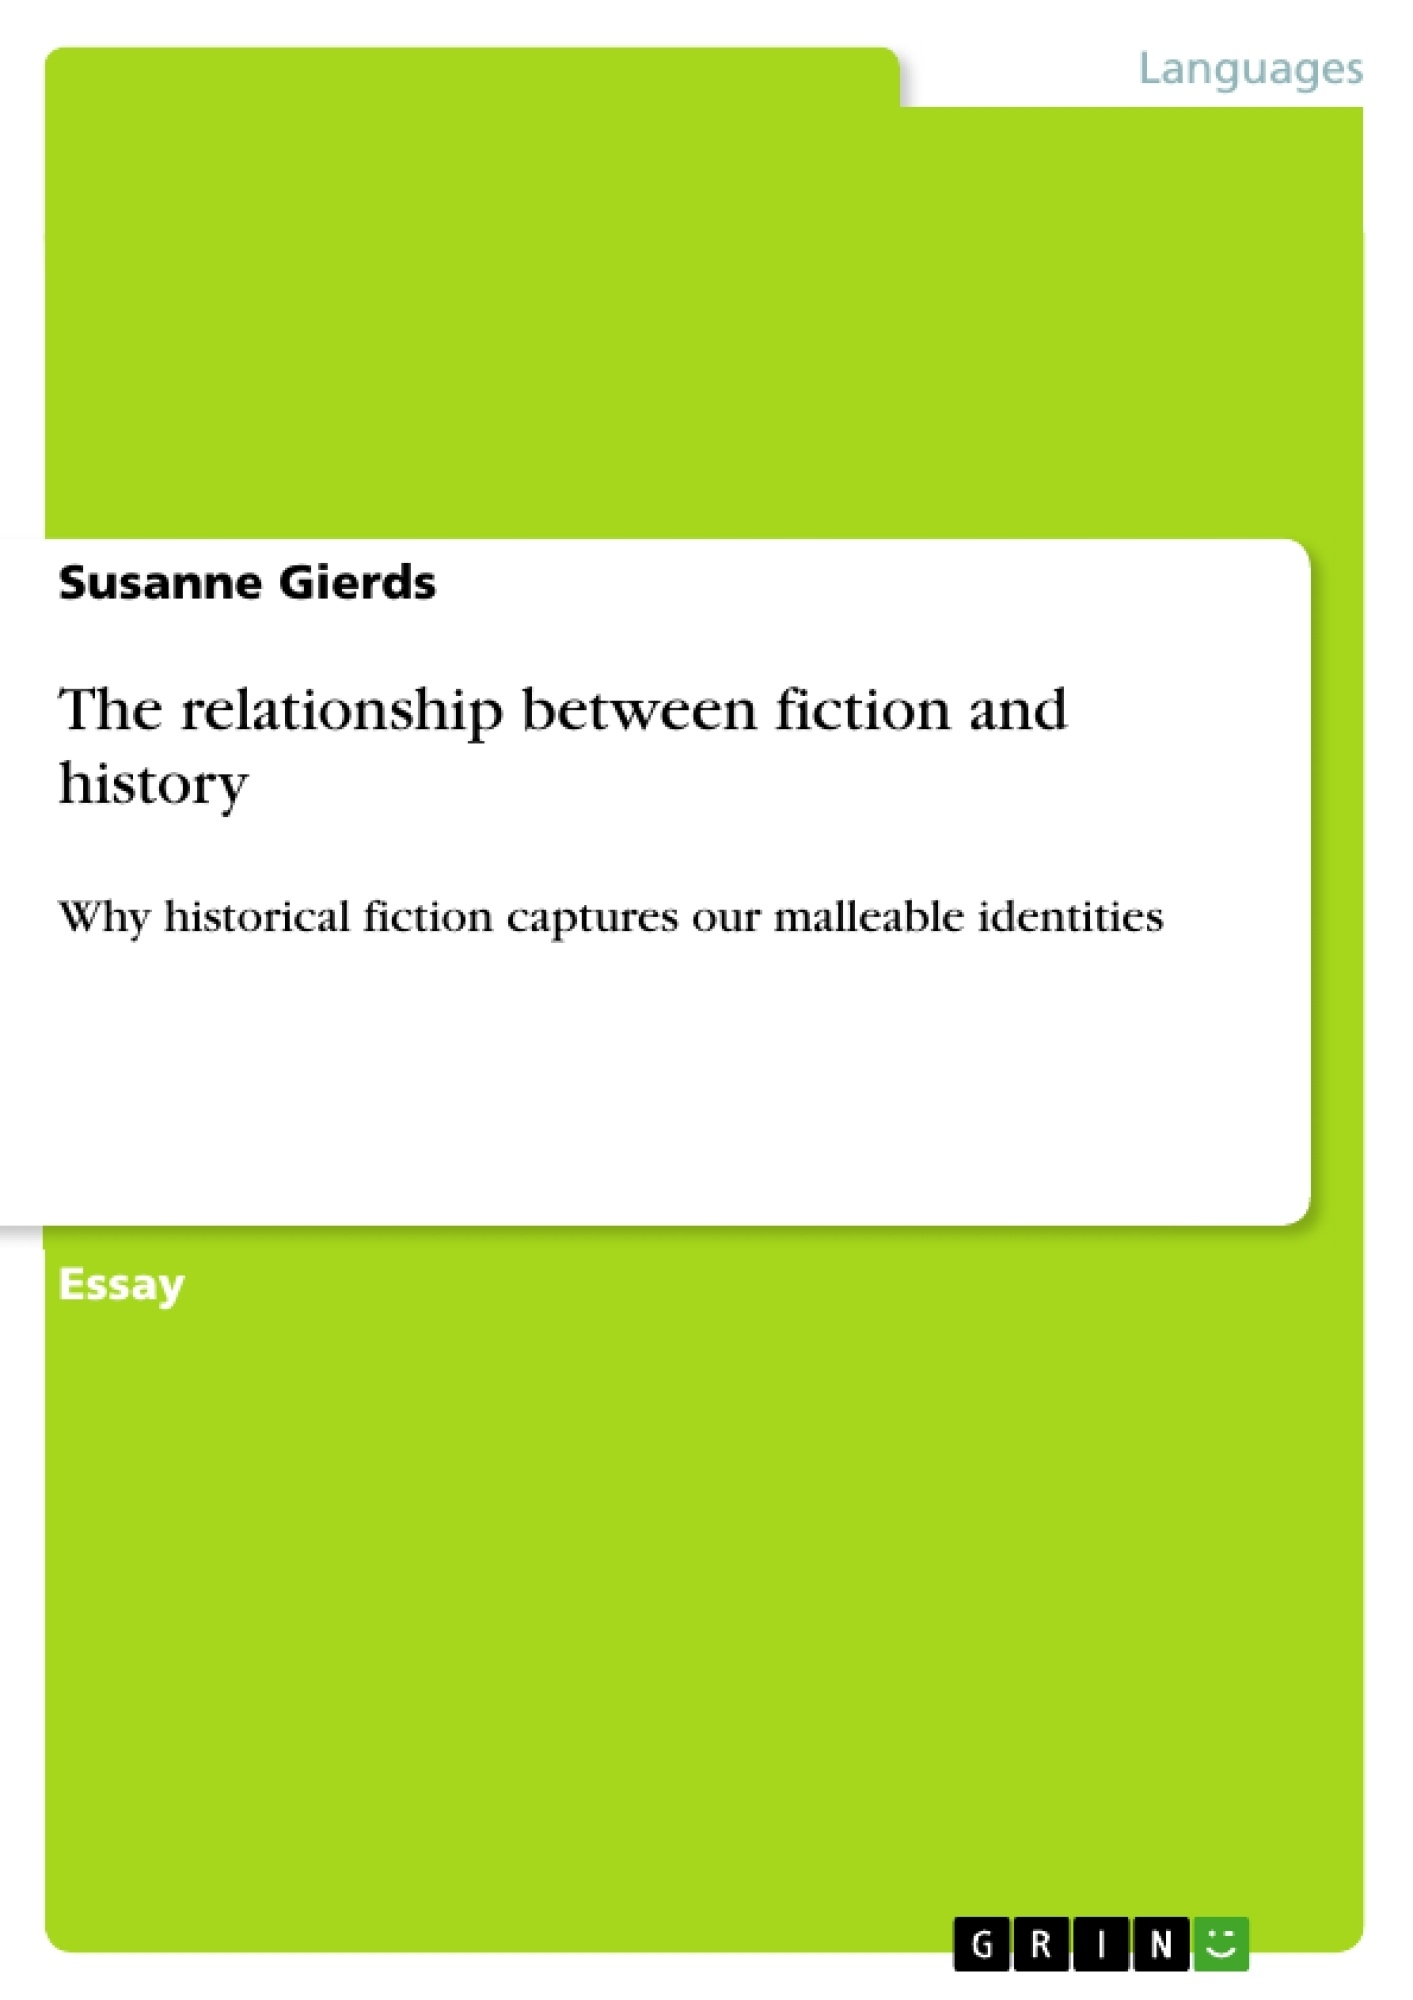 Title: The relationship between fiction and history